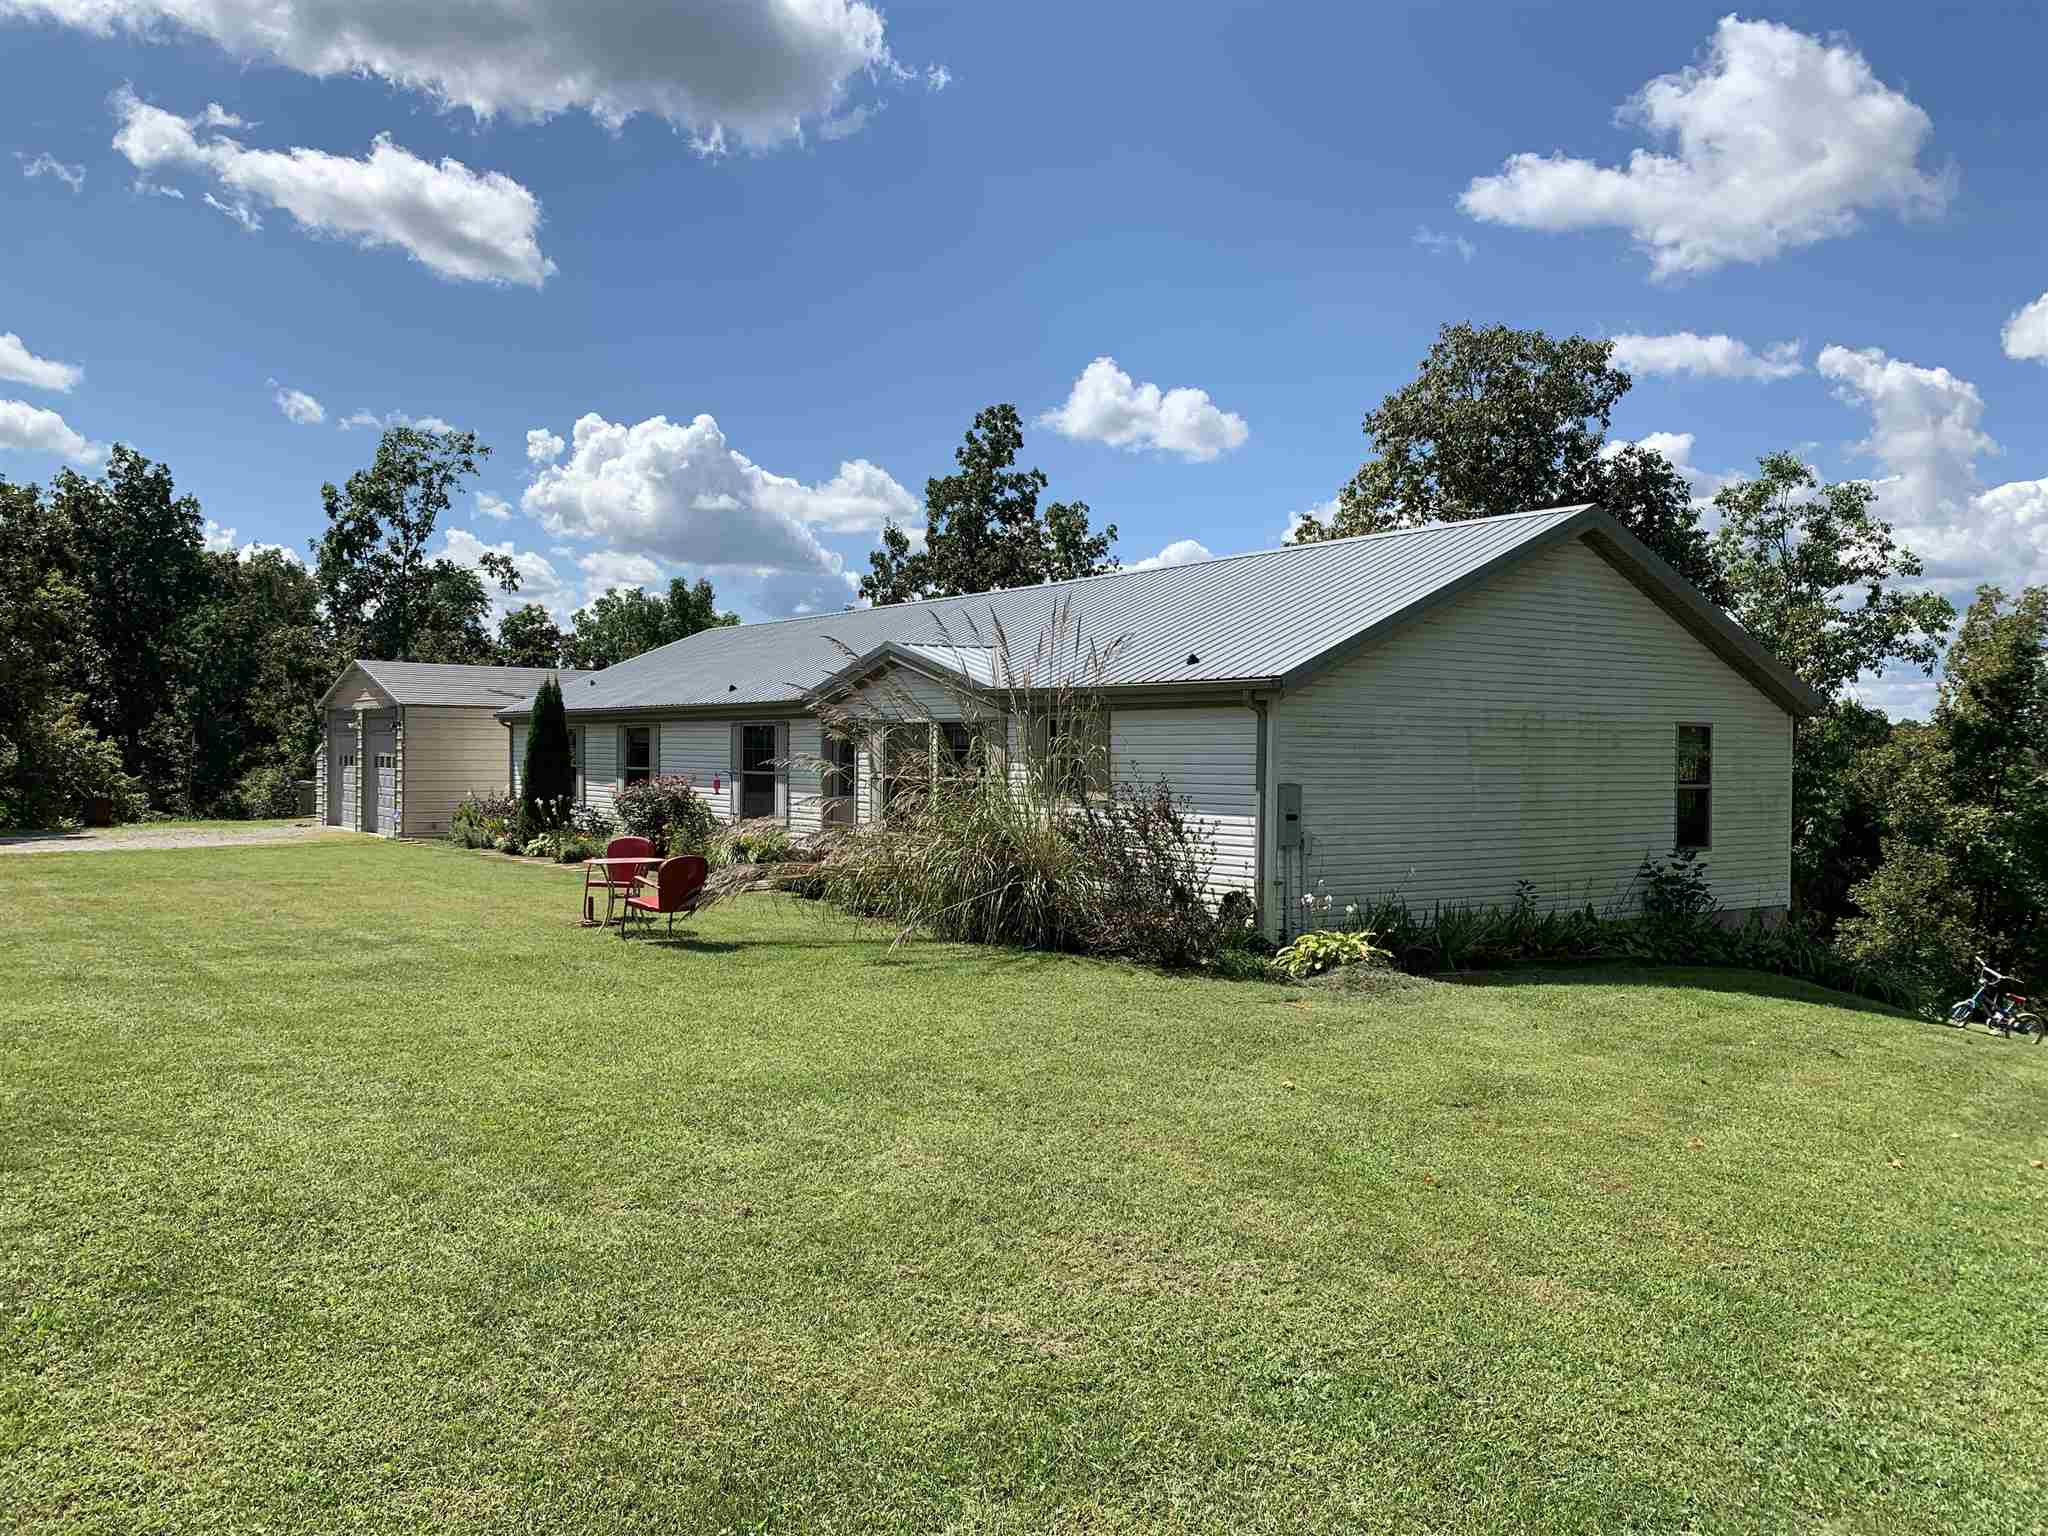 Photo 2 for 15332 Carlisle Road Crittenden, KY 41030